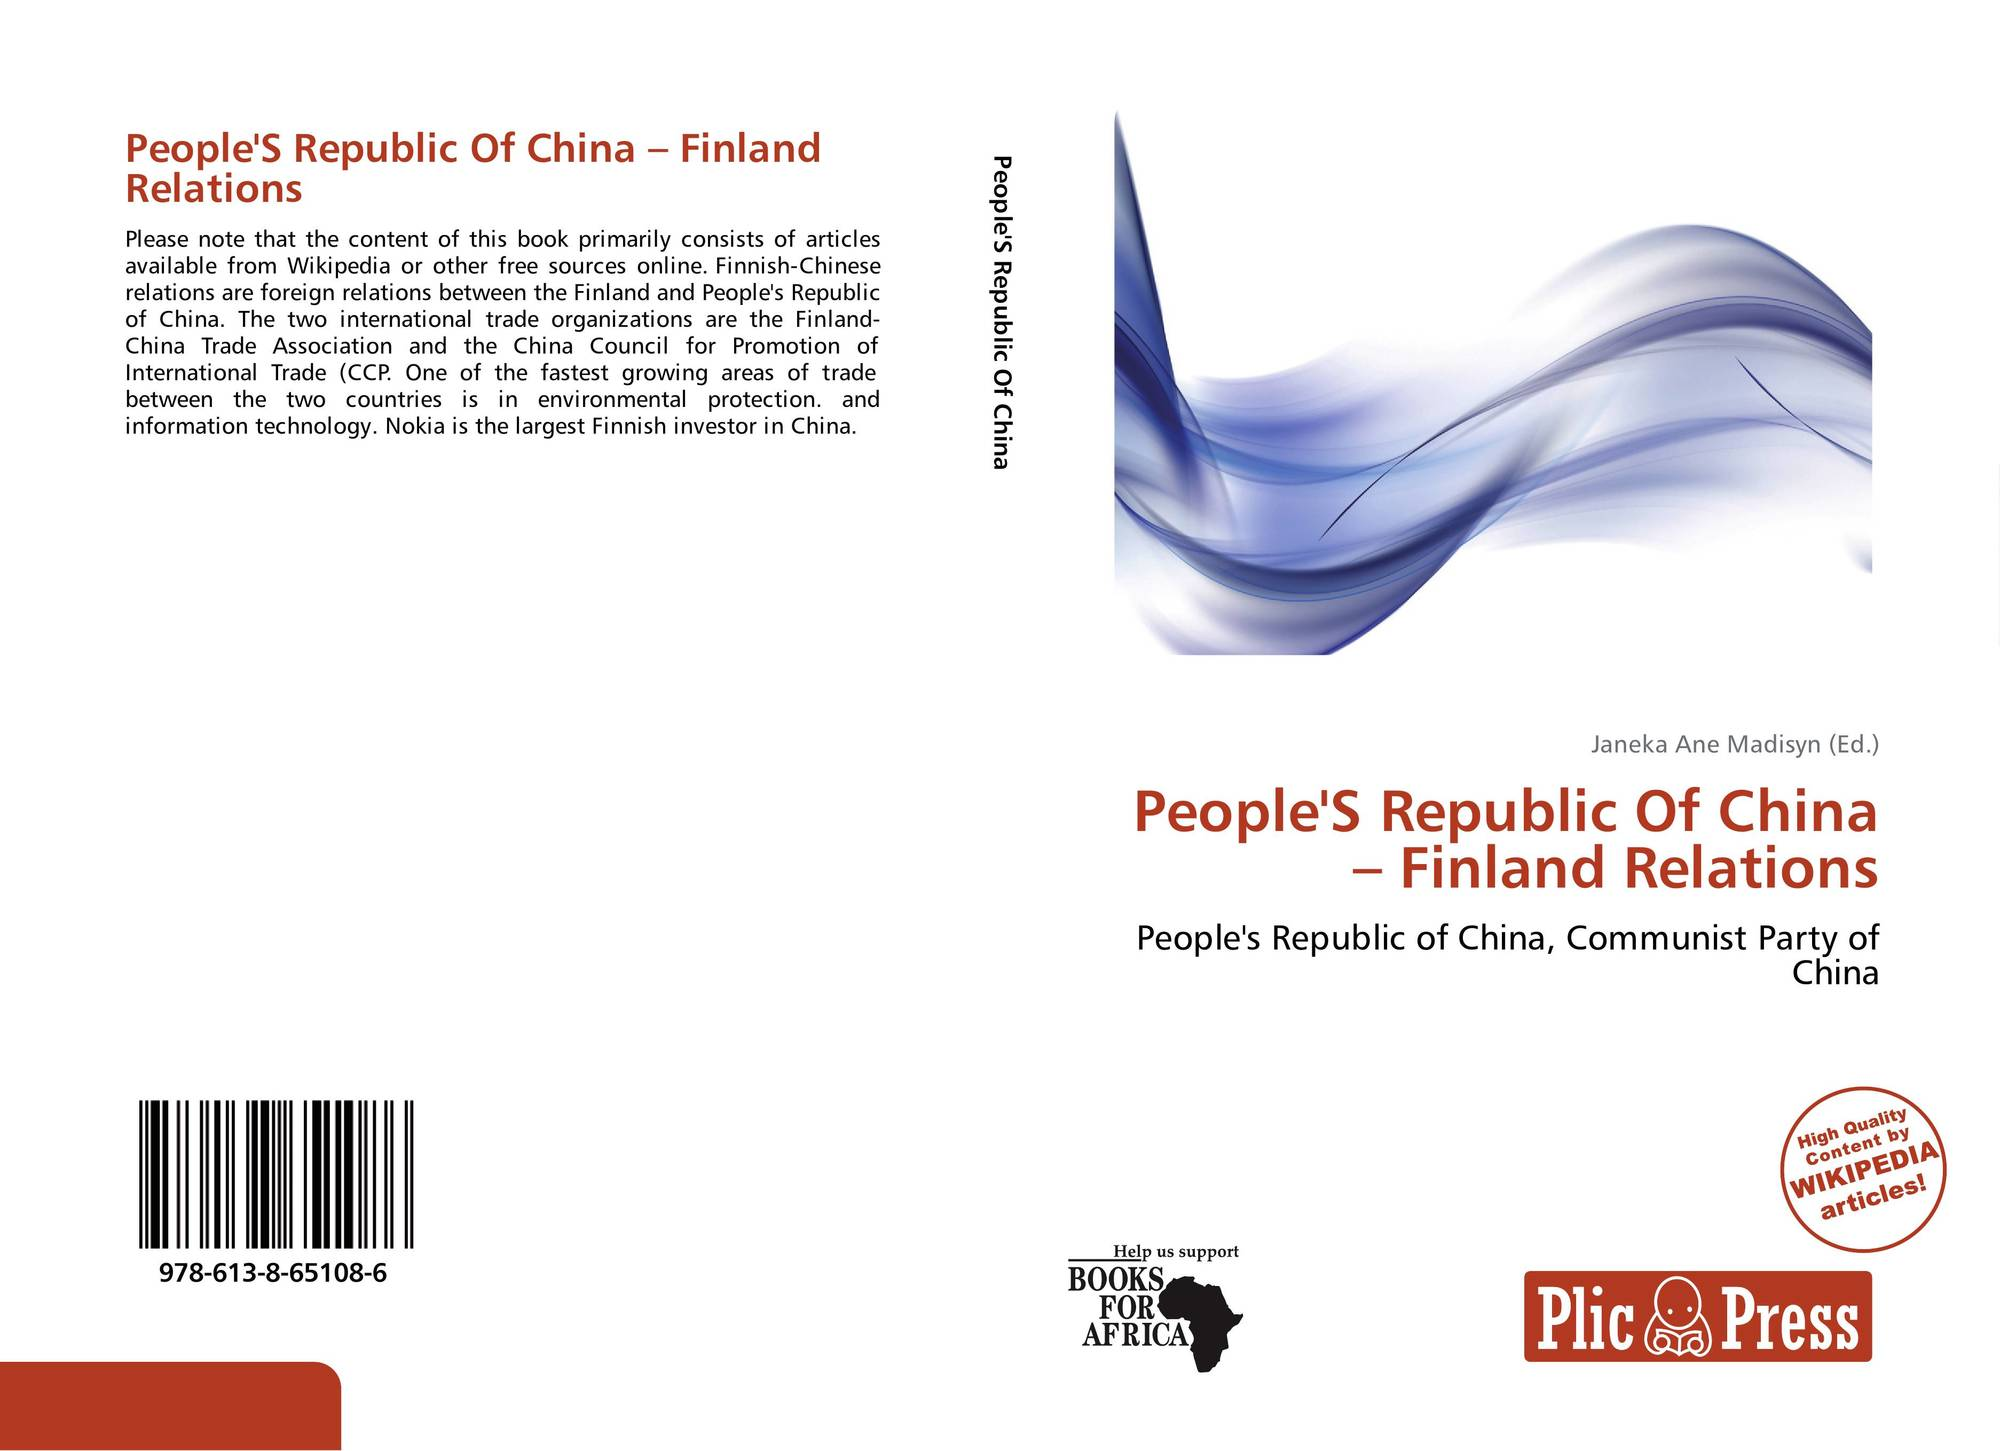 an analysis of china us diplomacy and relations Since formal bilateral relations were established in 1998 between south africa and china, certain aspects such as business or diplomacy that are at the core of relations, have advanced further than a real understanding of values, culture and people.